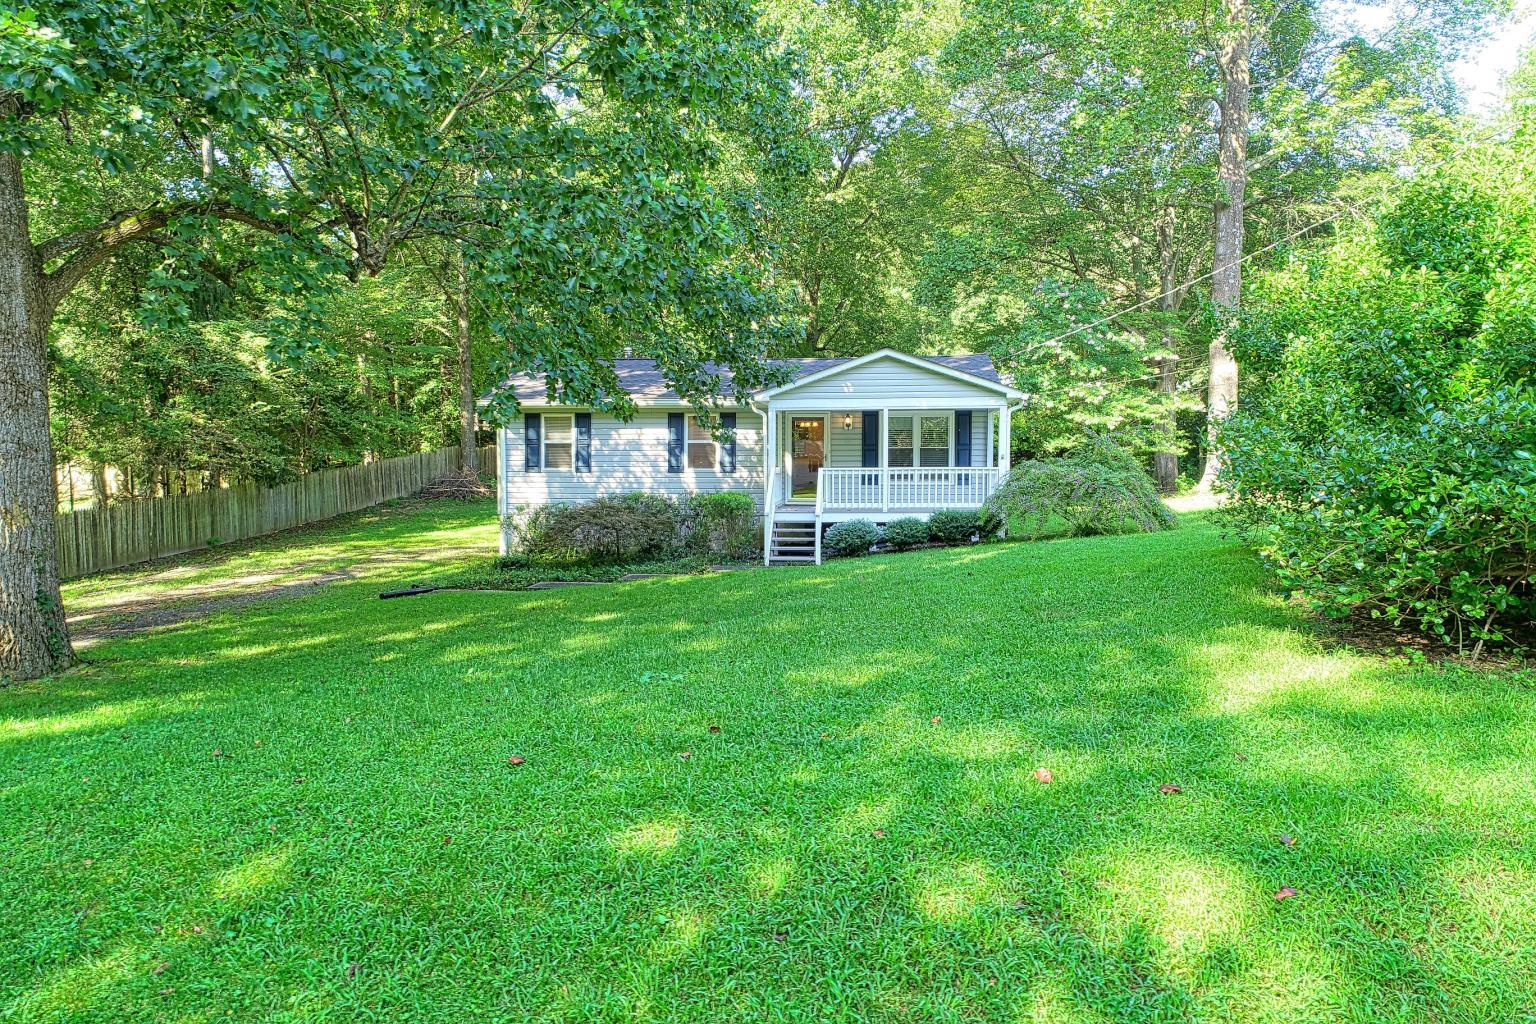 Great Lot!  Great Location!  29783 Skyview Drive in Mechanicsville, in Northern St Marys County, Won't Last Long!  Call Marie Lally at 301-748-8698